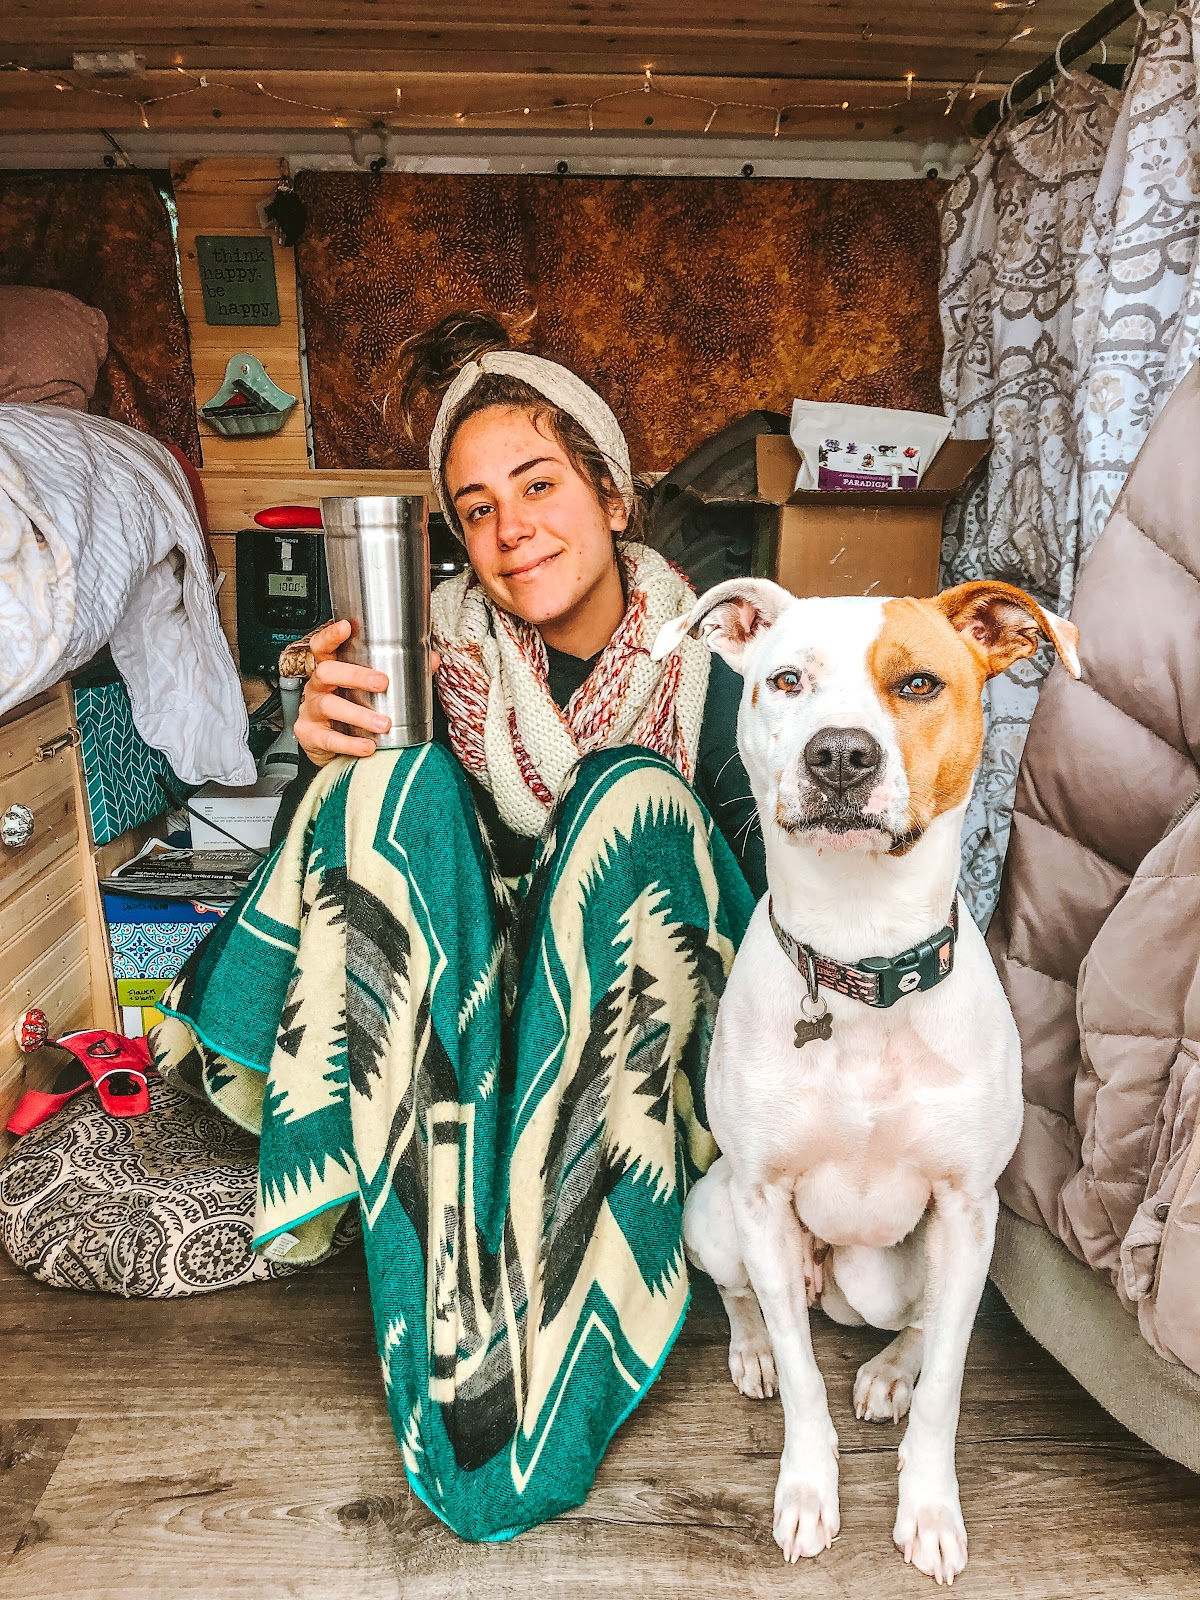 Annie inside of a converted van with a green blanket smiling next to her emotional support dog Henna.